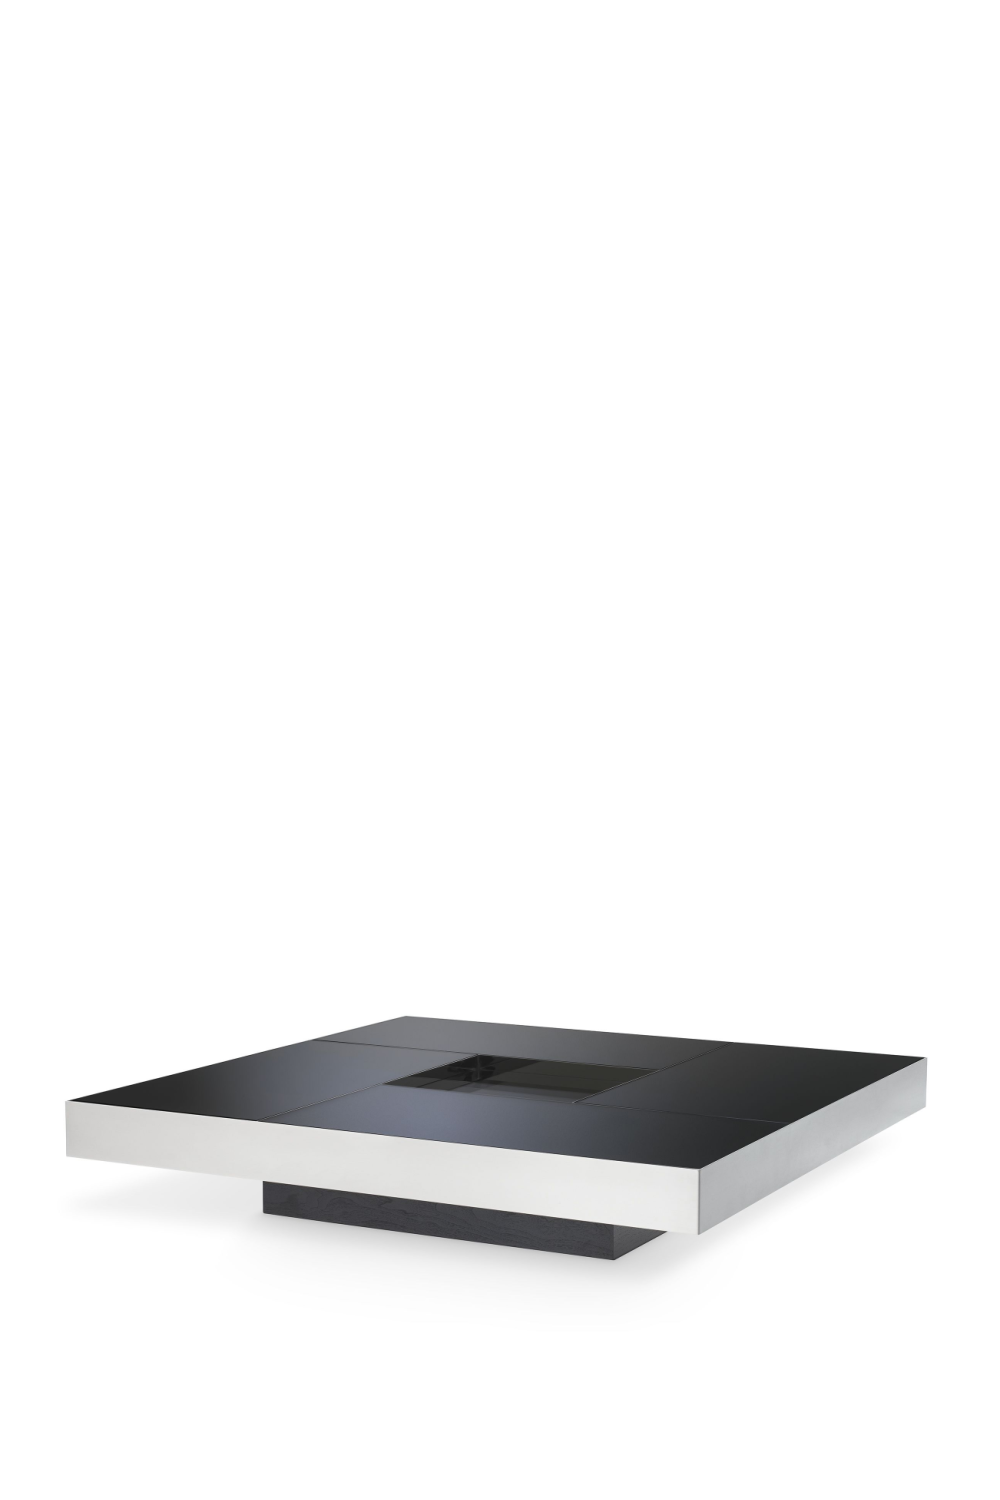 Square Pedestal Coffee Table | Eichholtz Allure | #1 Eichholtz Retail